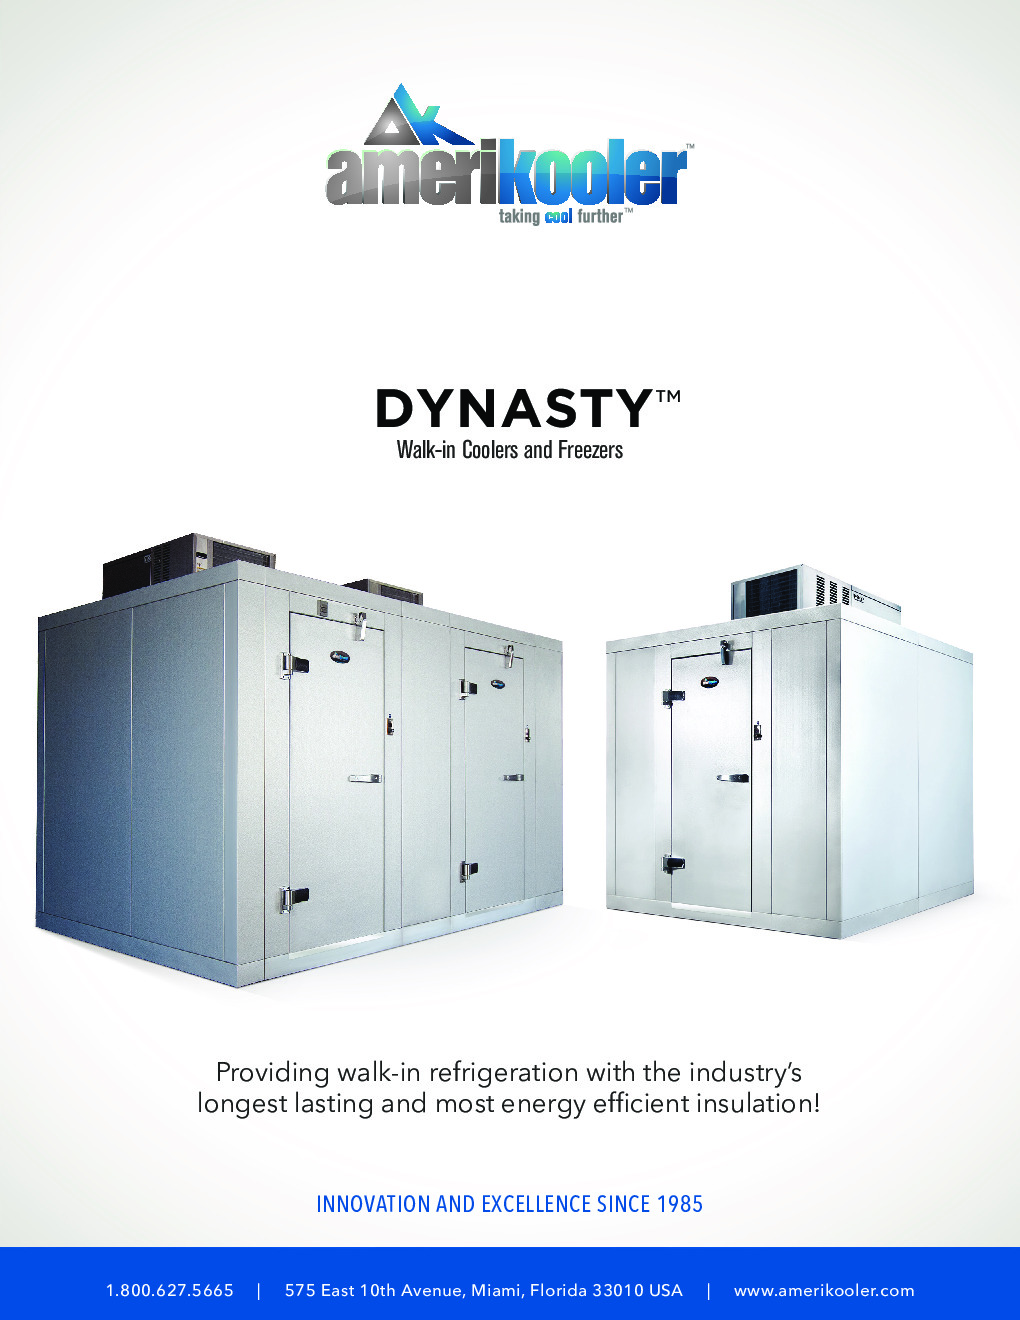 AmeriKooler DW101277N-6/6-SC 10' X 12' Walk-In Cooler, 6' L Cooler without Floor and 6' L Freezer, Self Contained